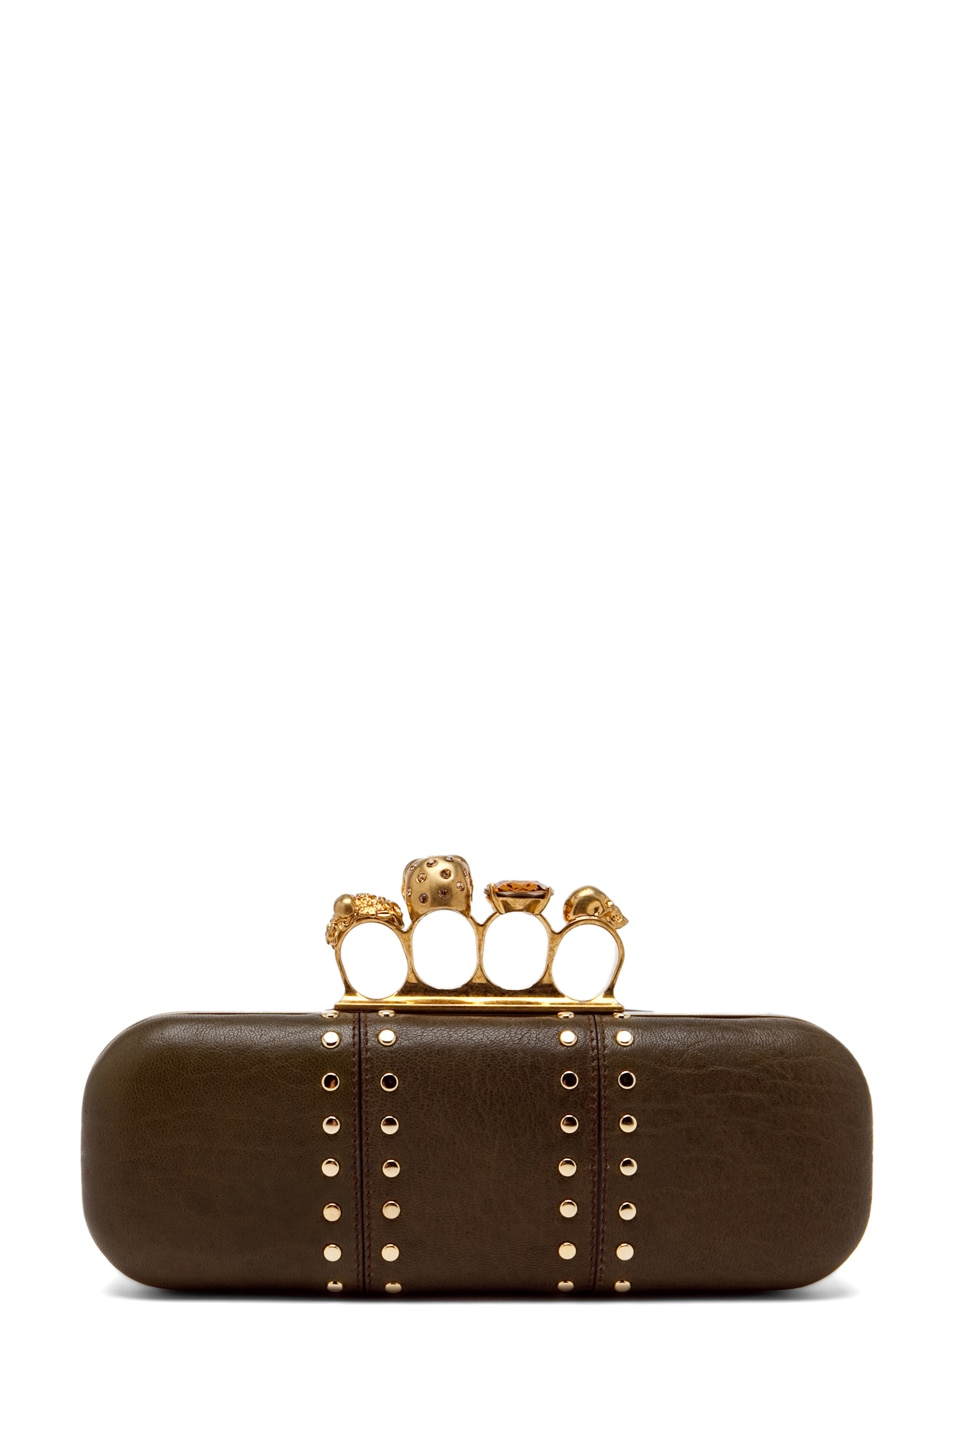 Image 2 of Alexander McQueen Knuckle Box Clutch in Olive Green